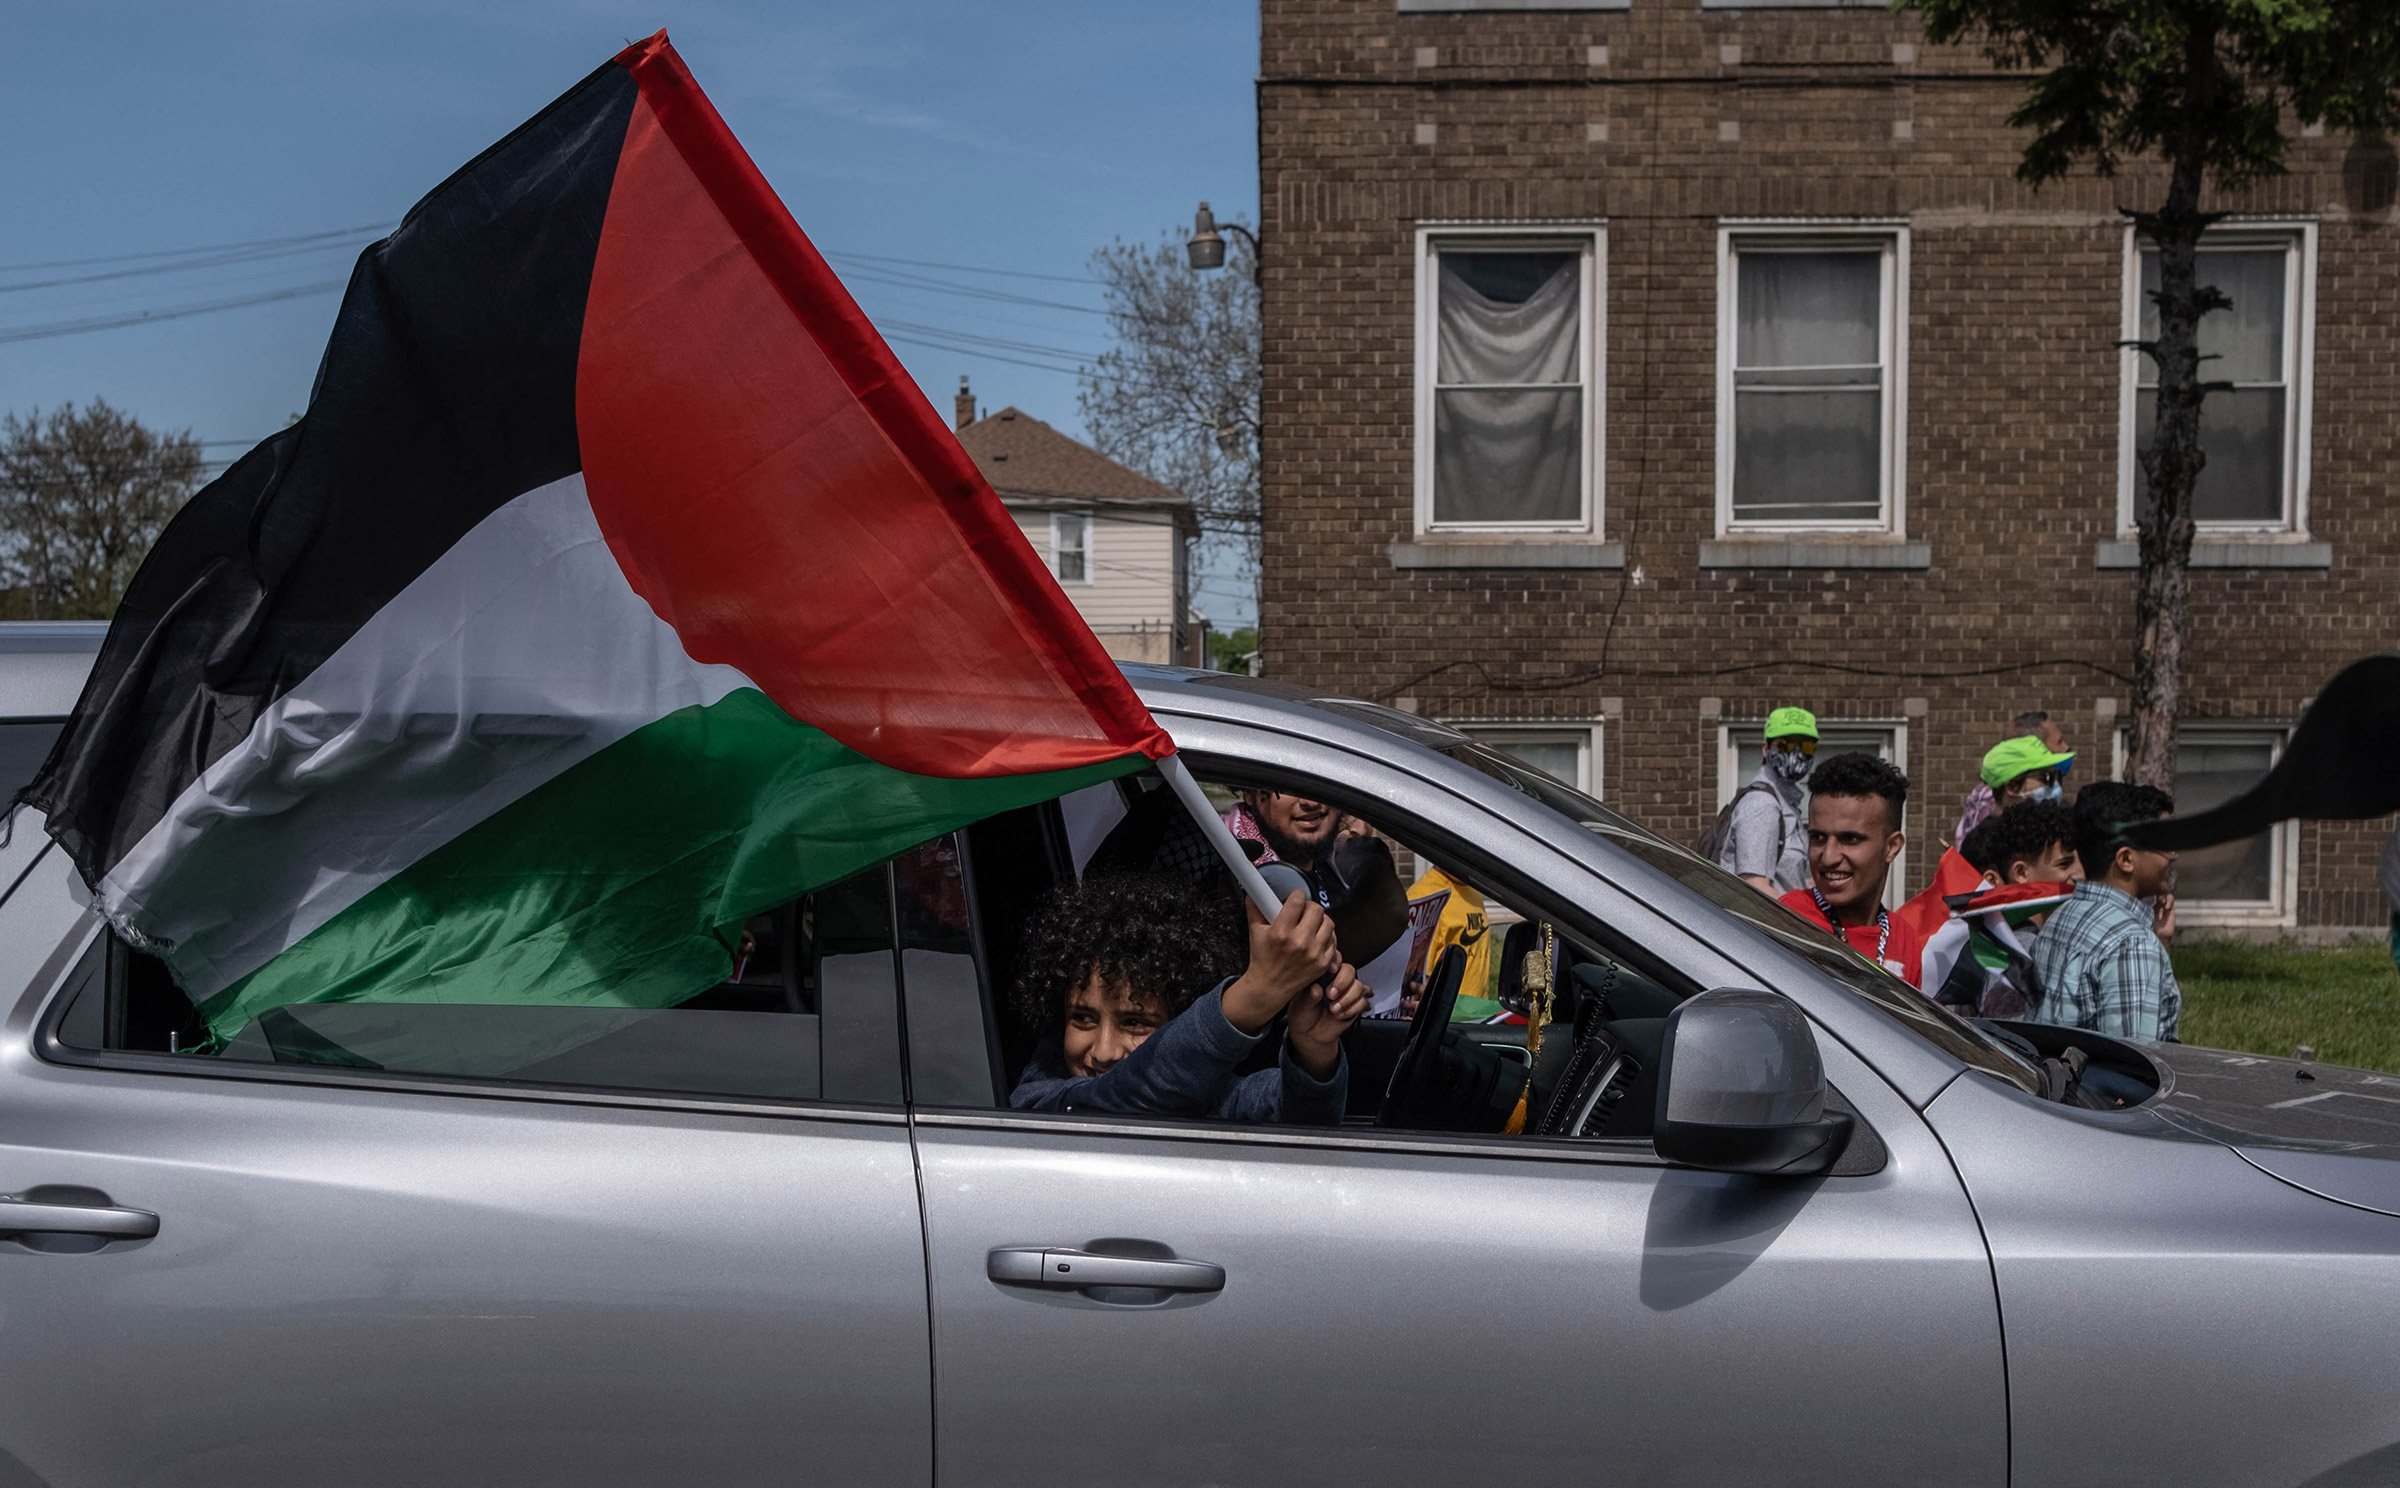 A protester waves a Palestinian flag during a march through neighborhoods near a Ford plant where U.S. President Joe Biden was touring in Dearborn, Mich., on May 18.